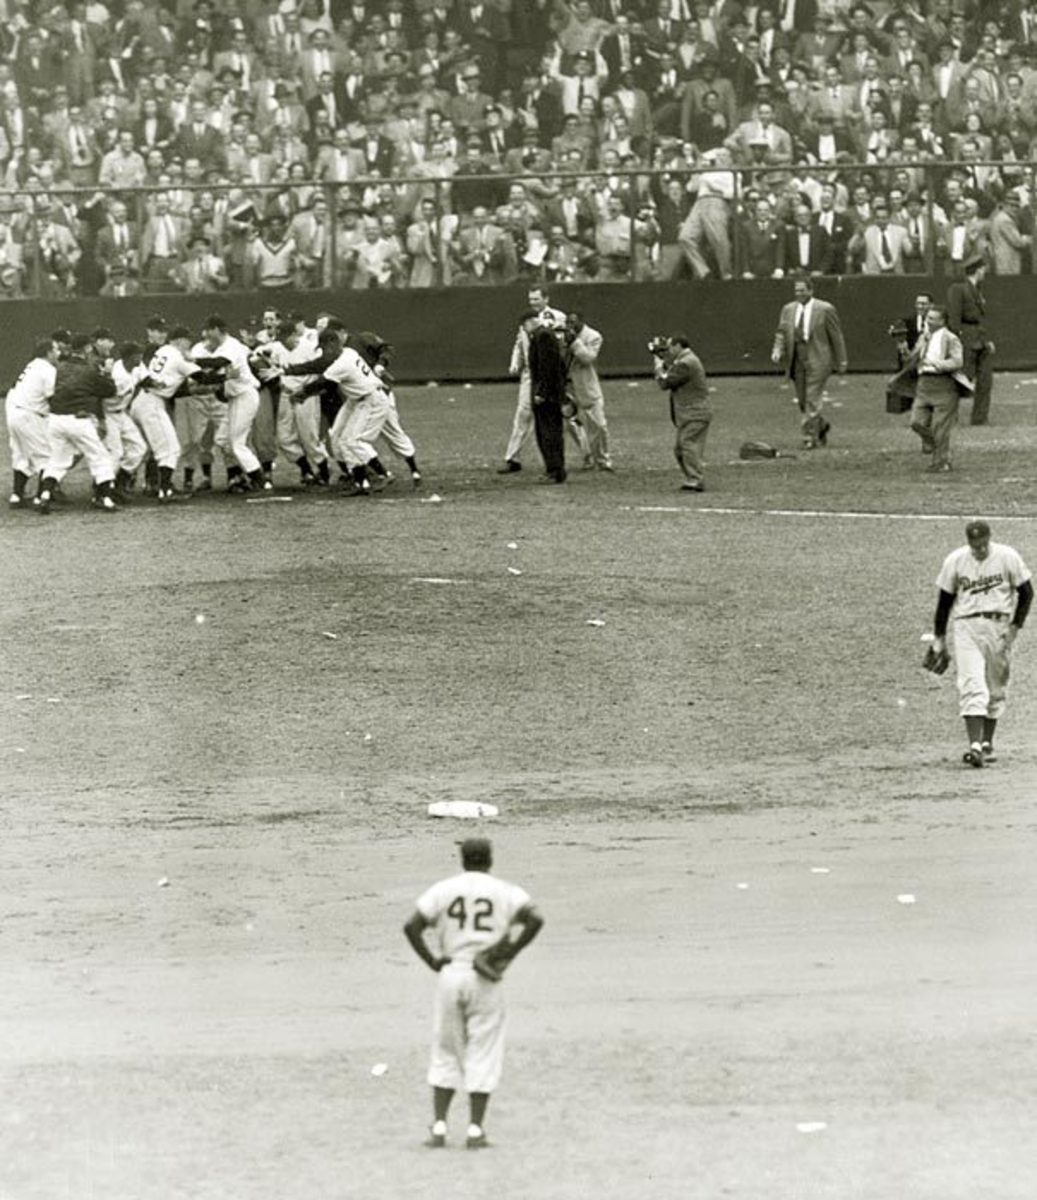 A rarely seen angle: The Giants mob Thomson as a dejected Ralph Branca starts the long walk to the visitors' locker room in center-field. Jackie Robinson stands in shock.